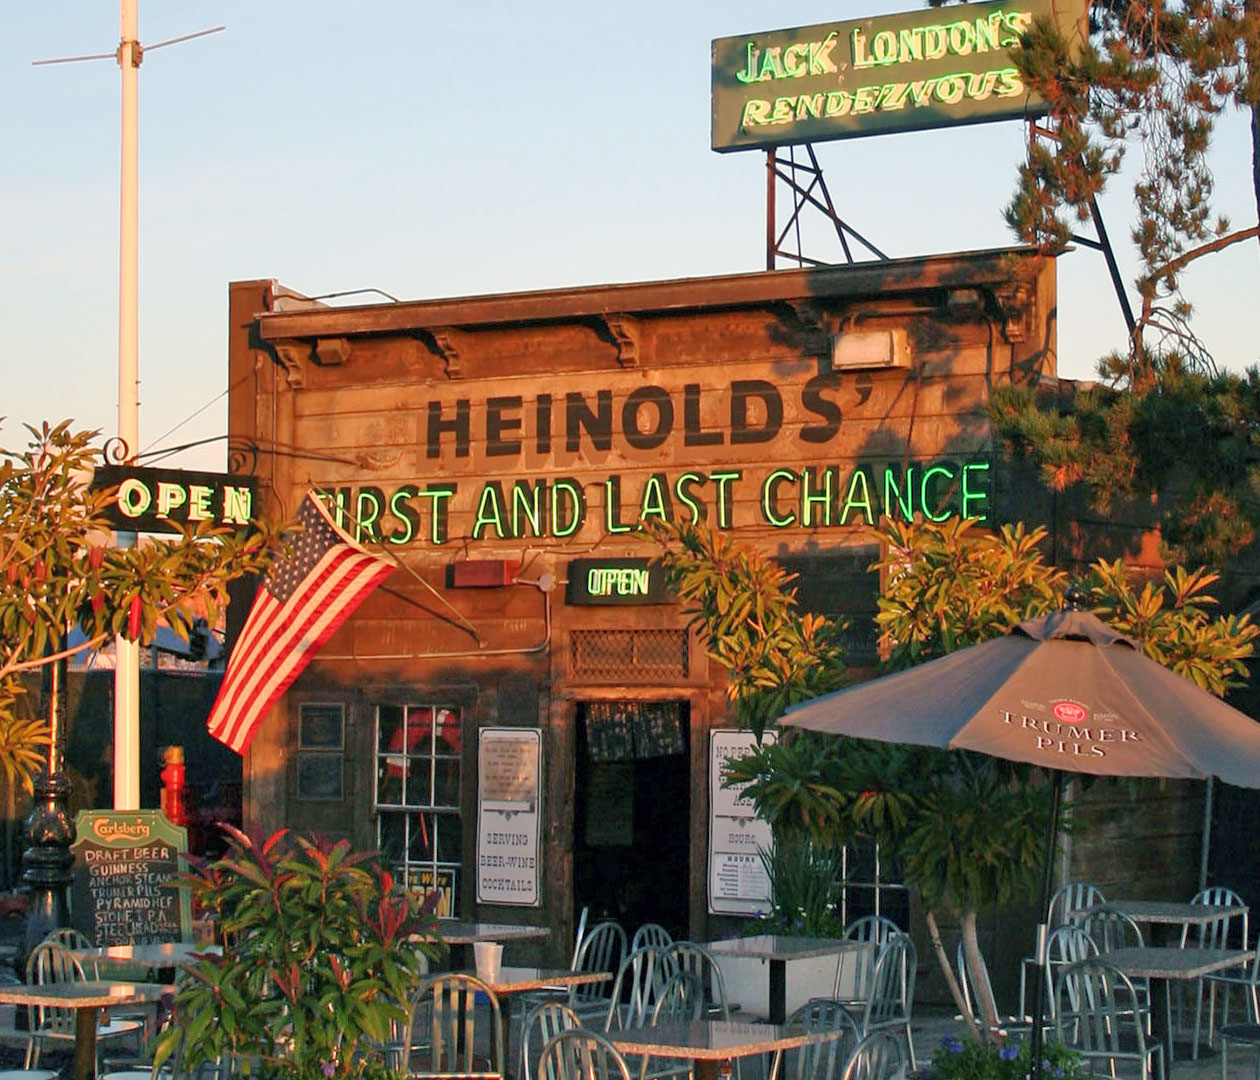 Heinold's First and Last Chance -- a waterfront saloon opened by John (Johnny) M. Heinold in 1883, built from the remnants of an old whaling ship at the foot of Webster Street in Oakland, where it remains today. It is also known as